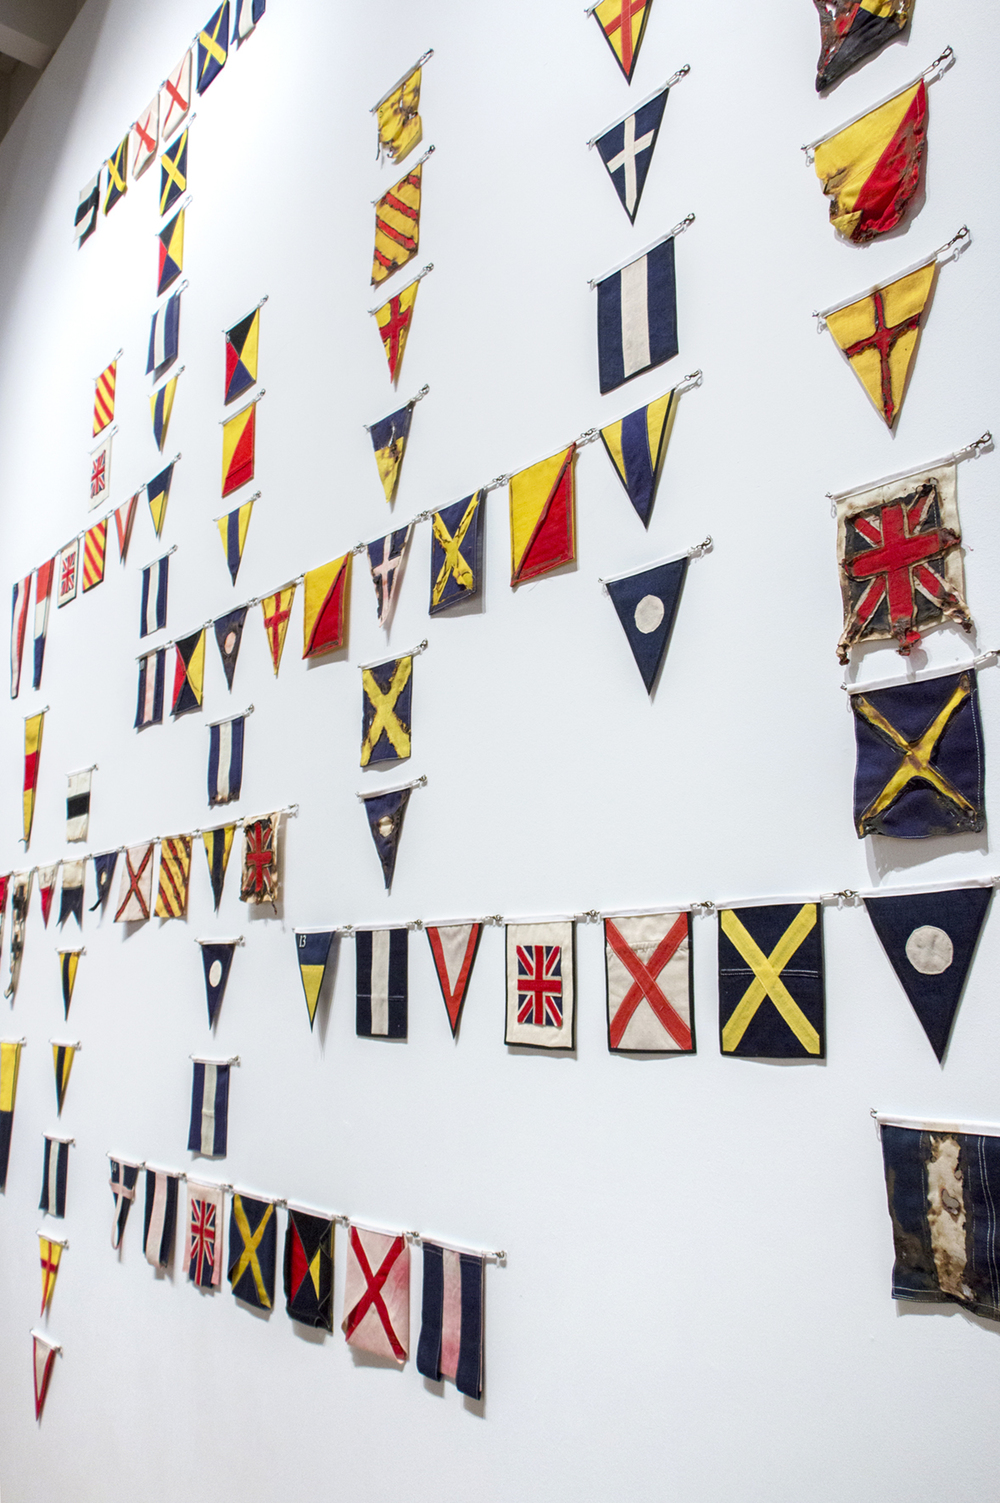 Yeo Crossword.  Vintage signalling flag fabric.  Royal Albert Memorial Museum Exeter. 2015